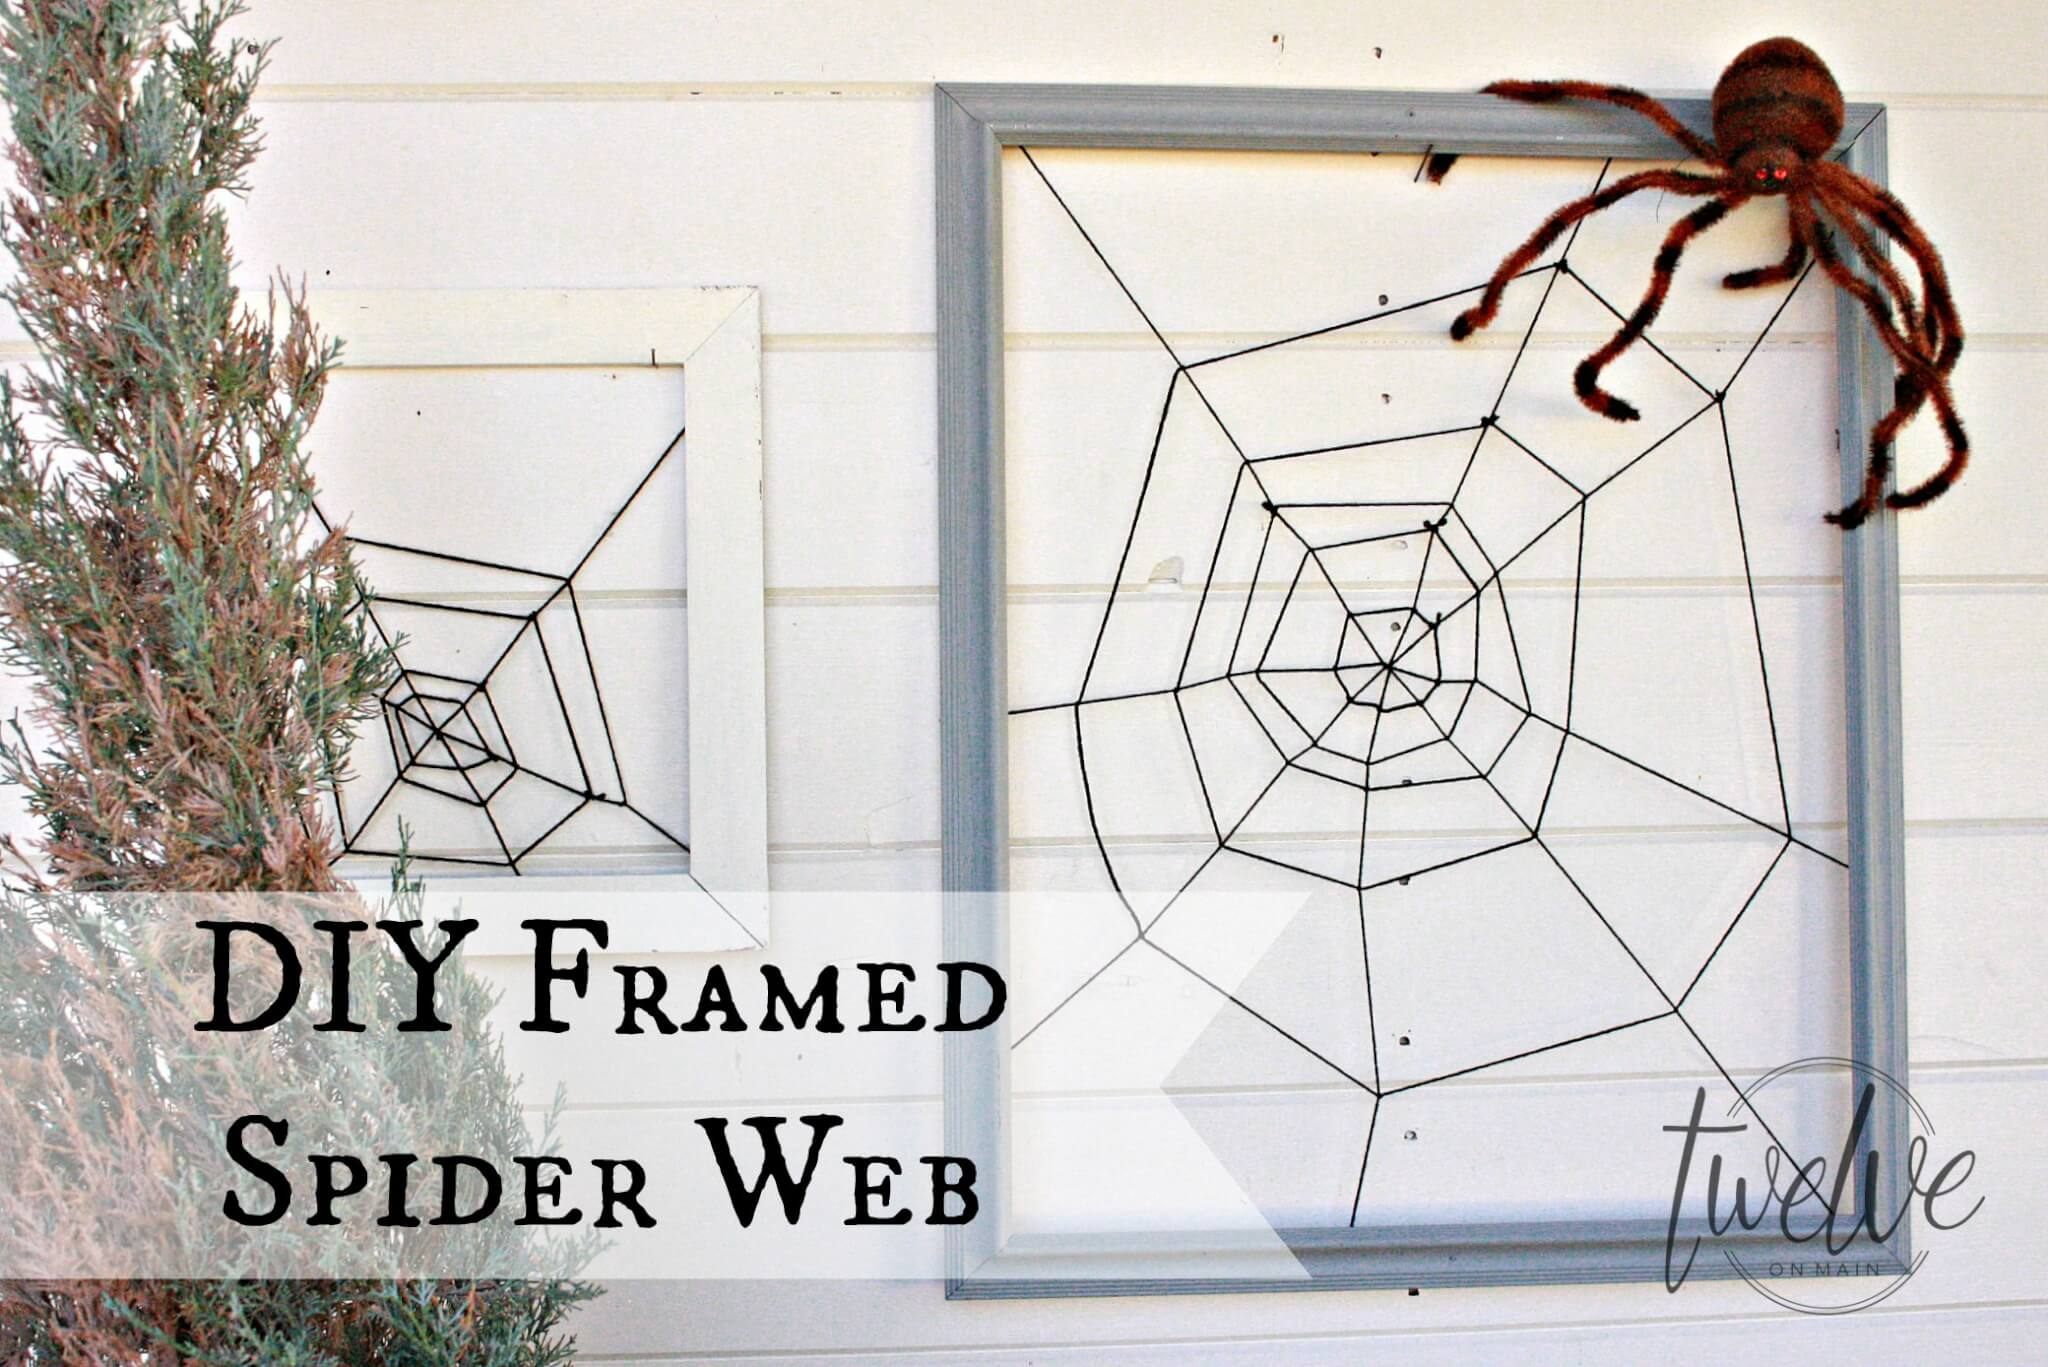 DIY Framed Spider Web